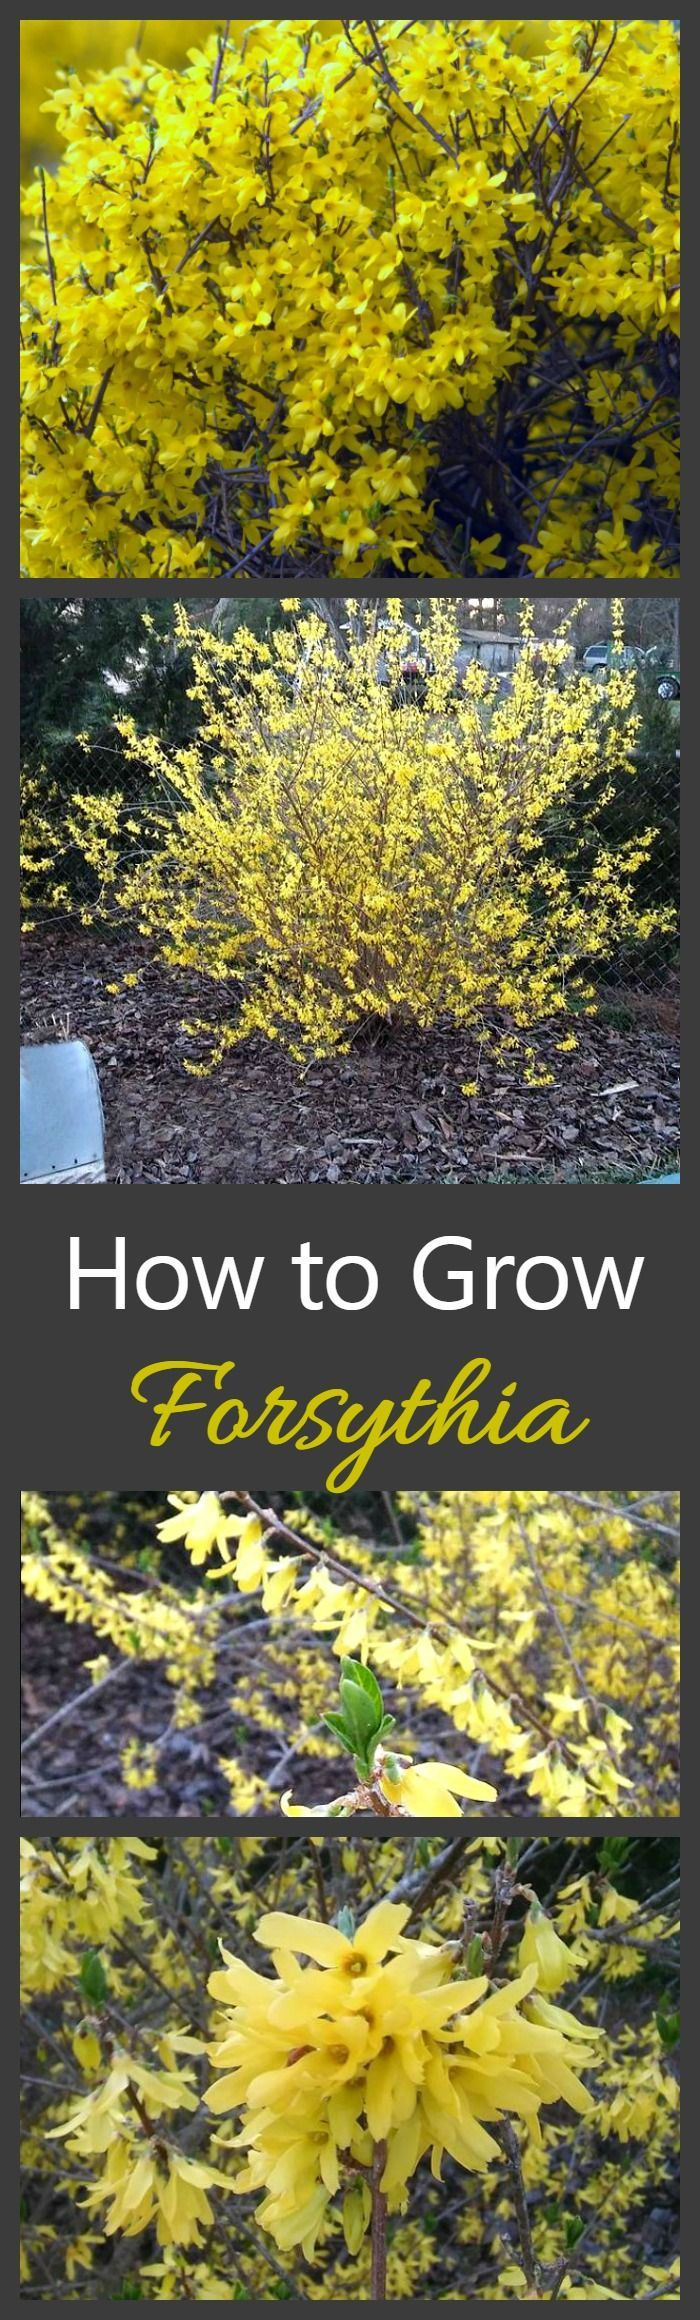 Shrubs with purple flowers at end of branch - Growing Forsythia Bushes Is One Of The Best Ways To Get A Really Early Show Of